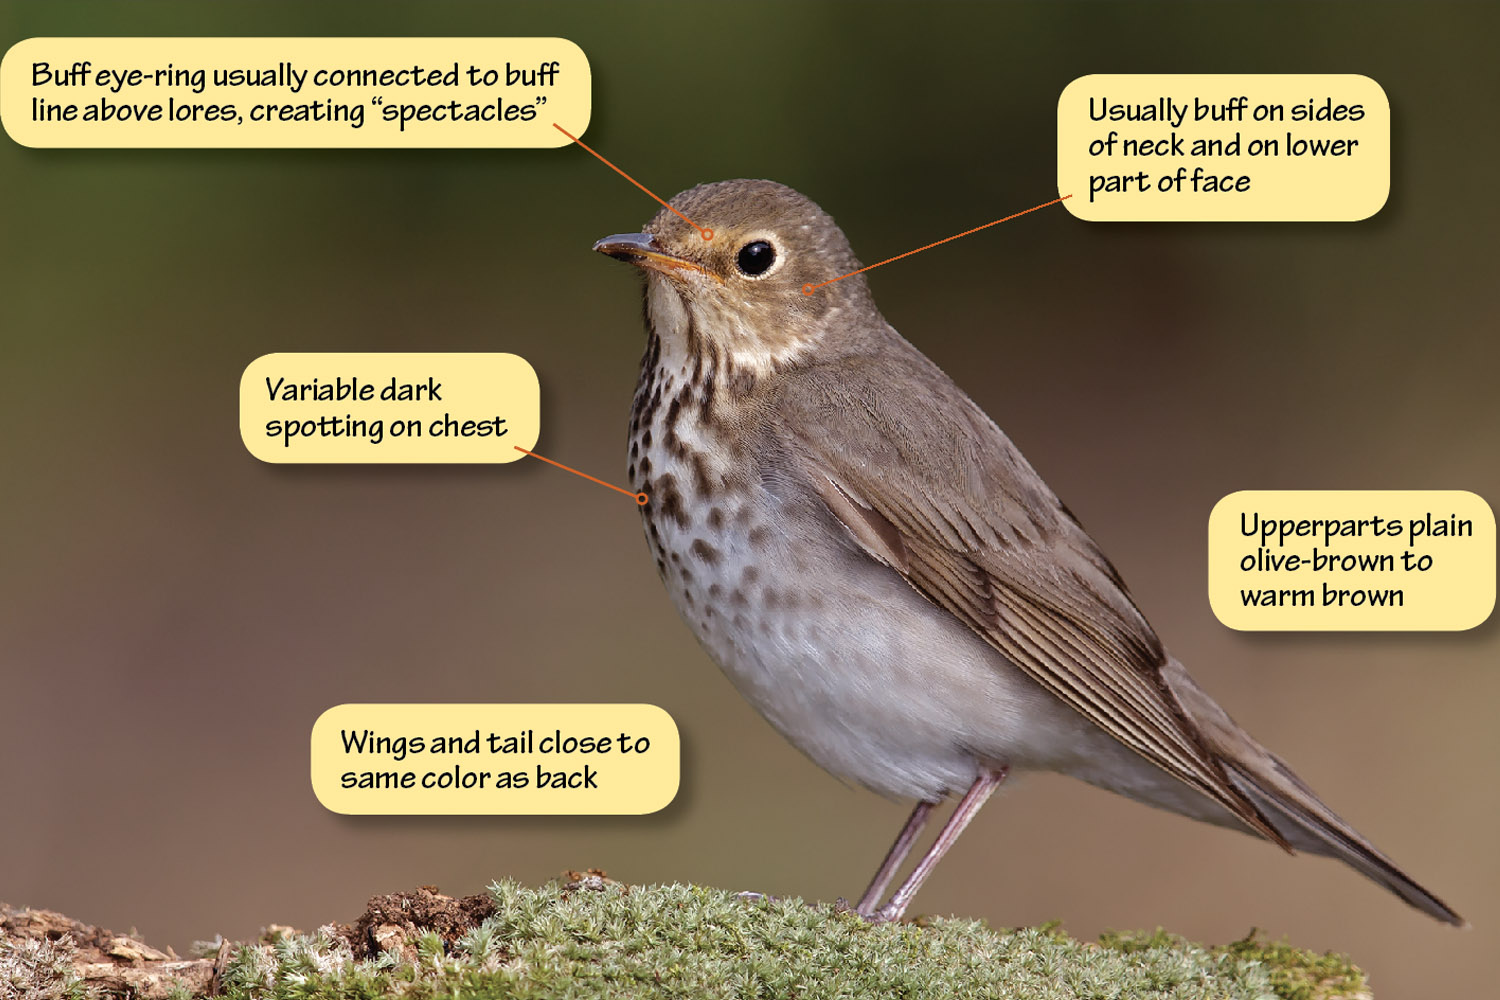 Identifying Swainson's Thrush, Gray-cheeked Thrush, and Hermit Thrush